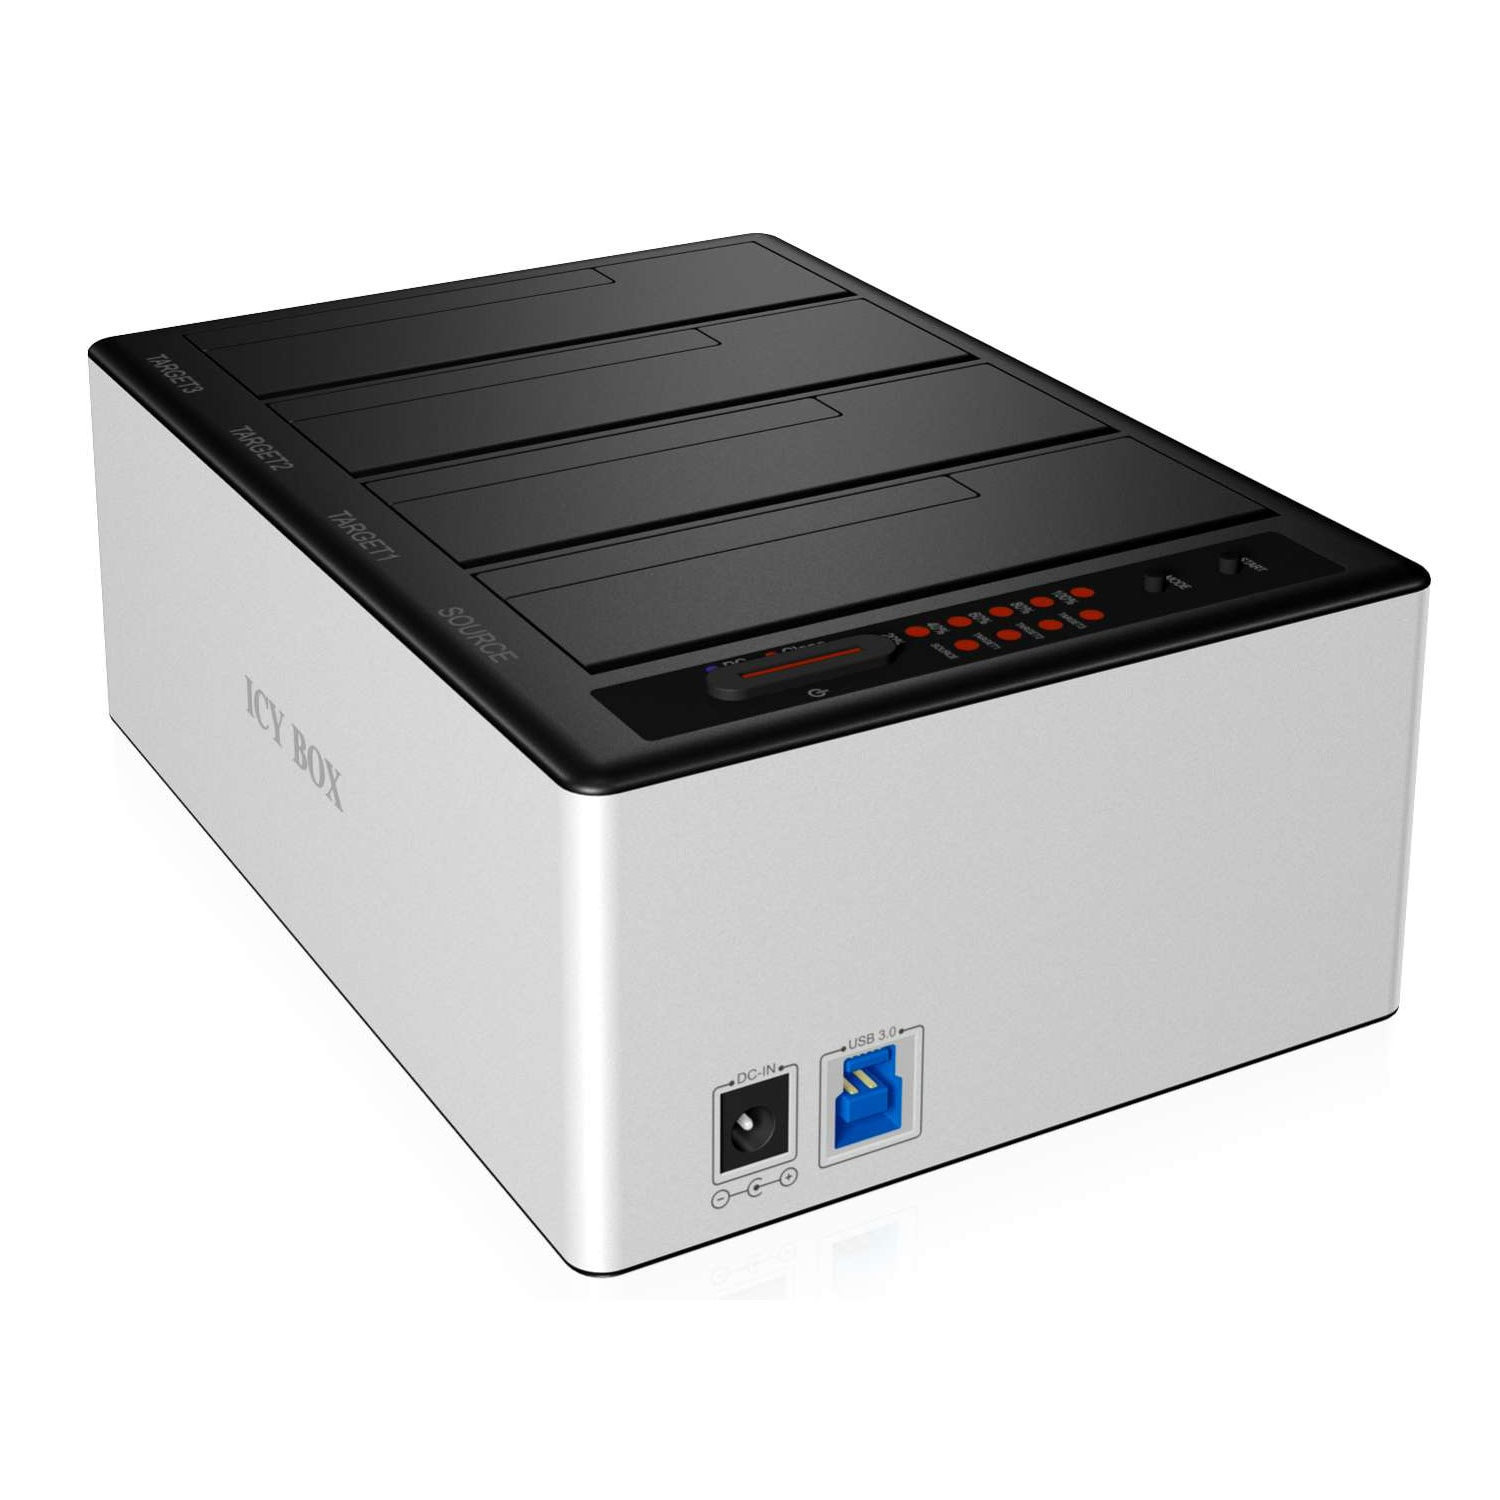 Icy Box Clone Station USB3.0 4 Baies - Boîtier externe - 2